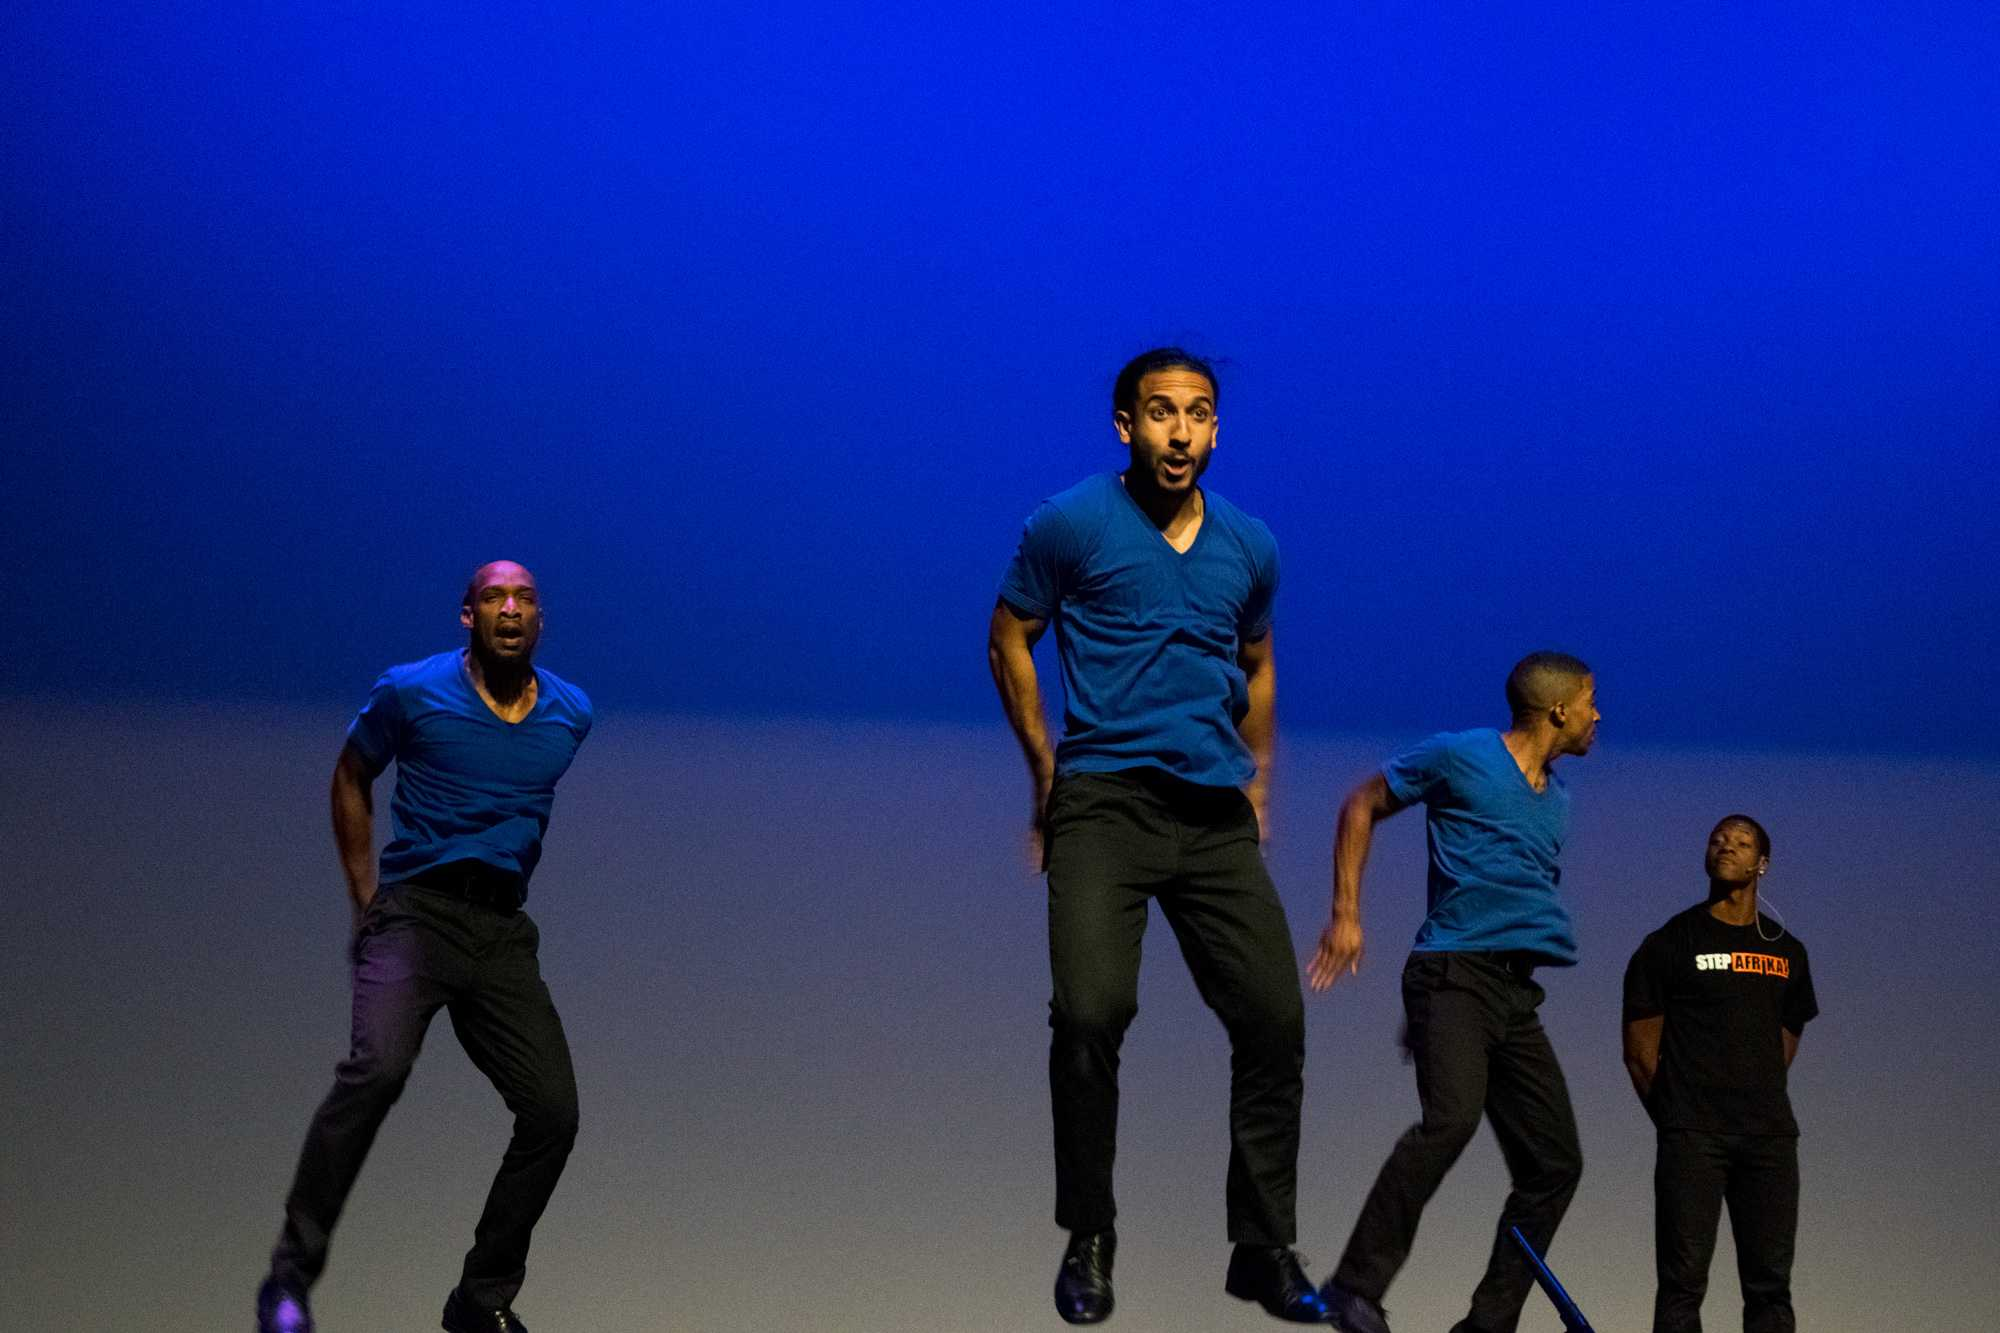 Step Afrika! Introduces students to the art of stepping